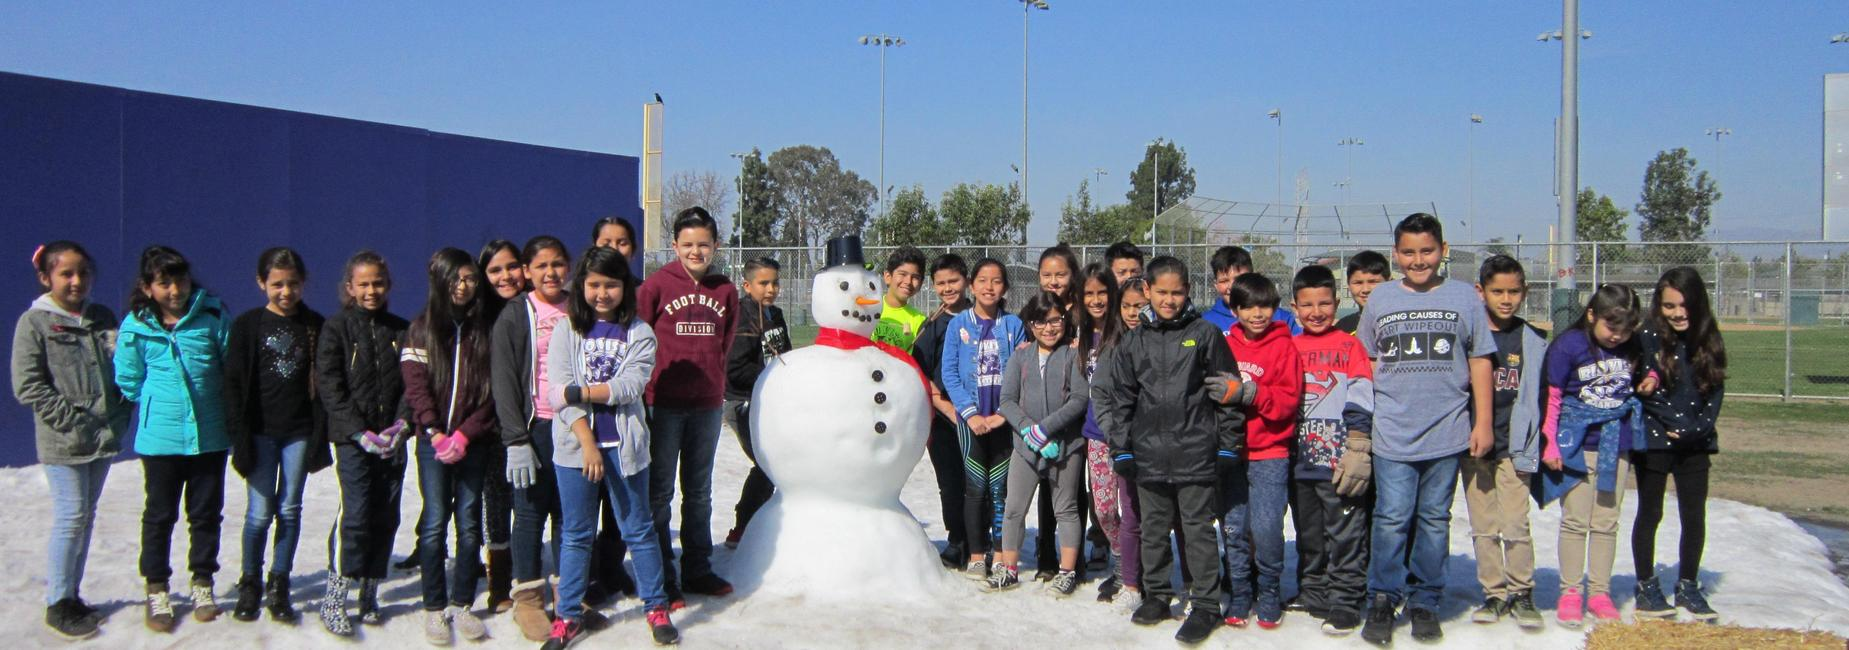 Students stand next to a snow man.